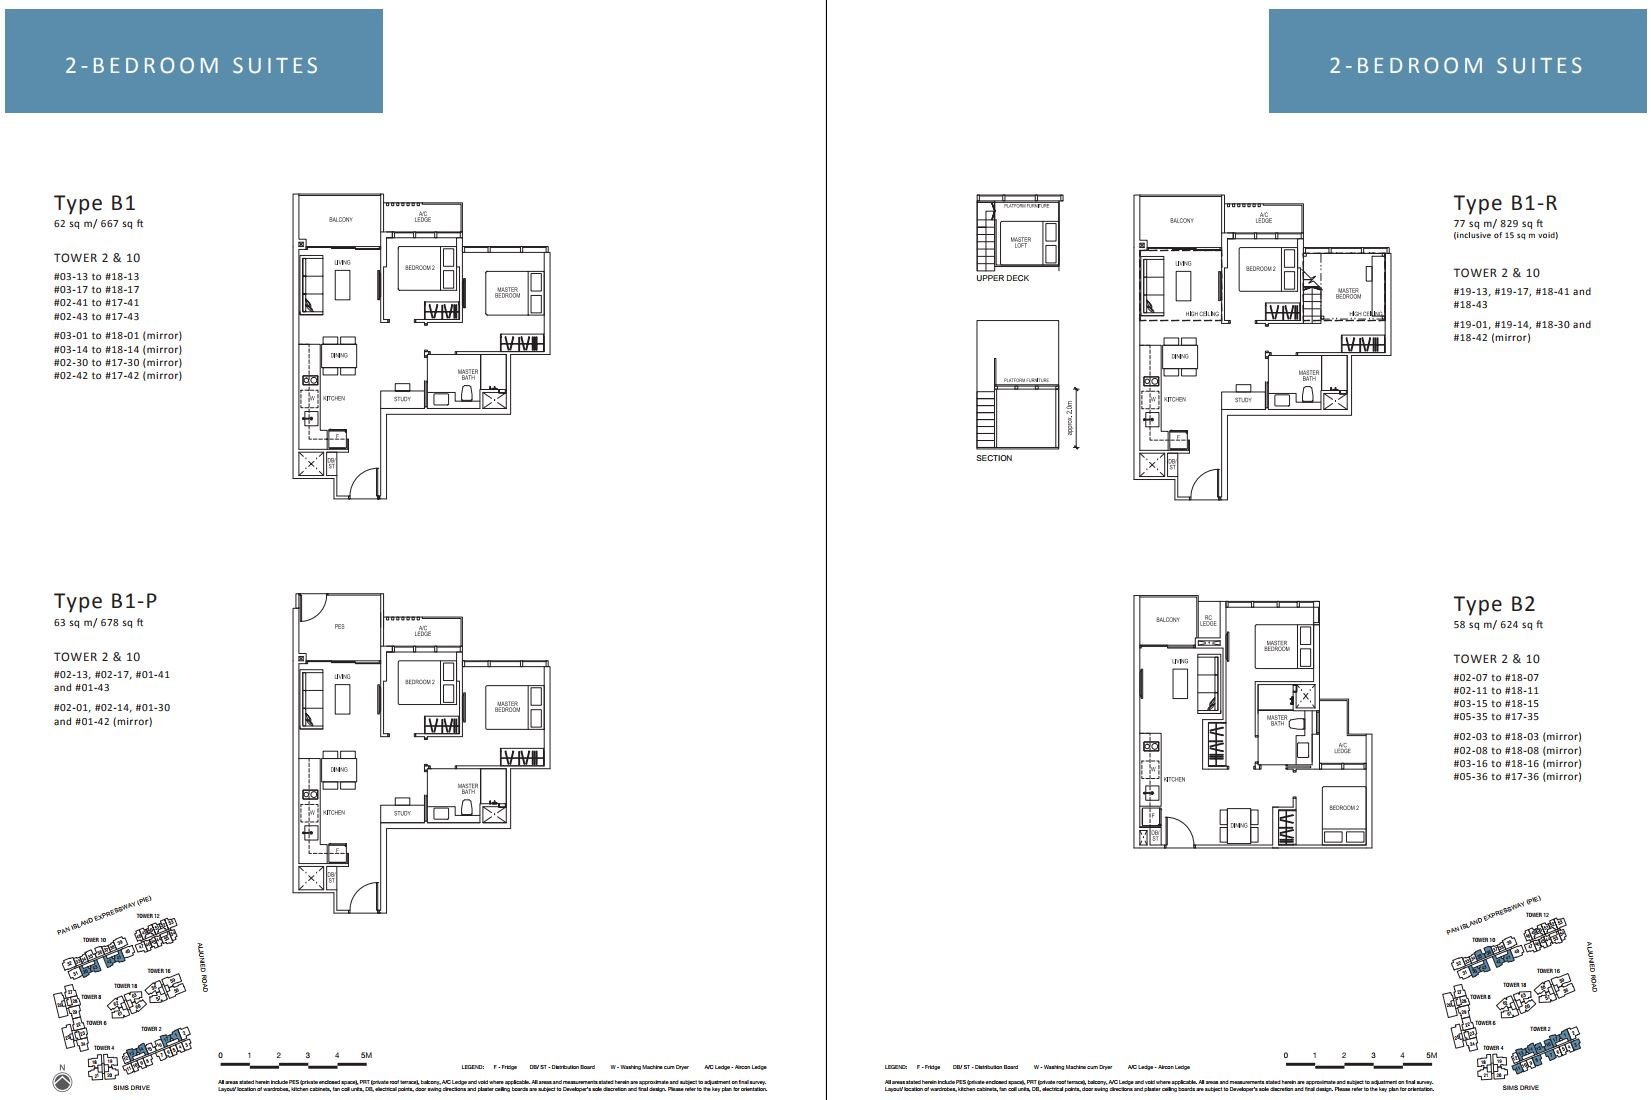 Sims Urban Oasis FloorPlan - 2 Bedroom Suites